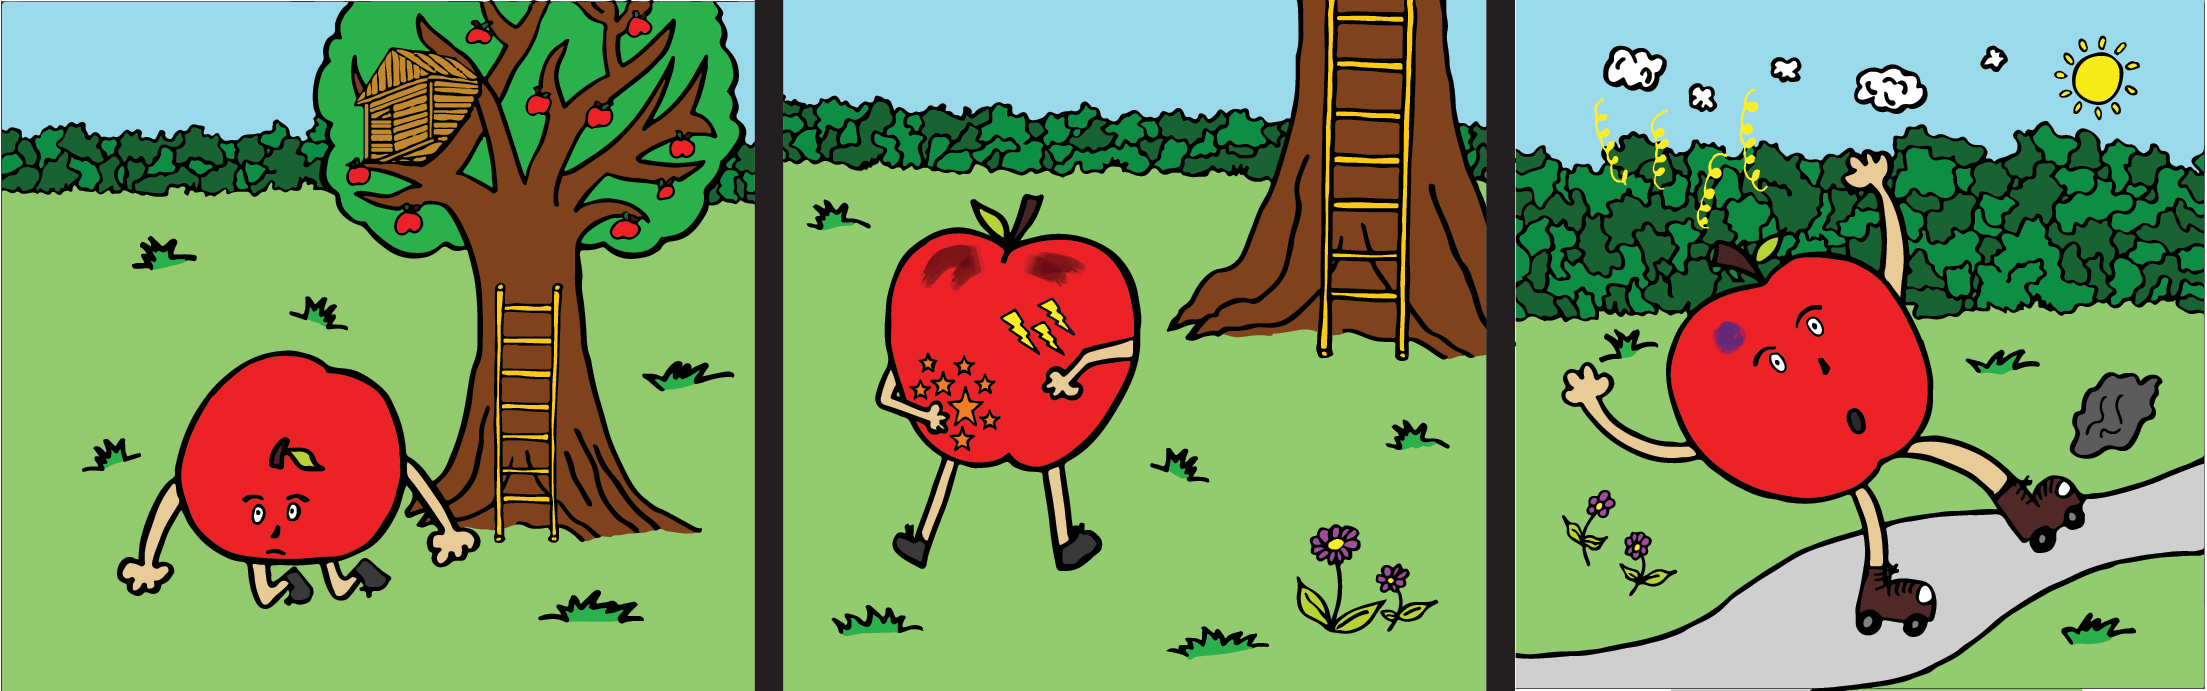 Bedtime stories - Adrian the Apple - children's book 1